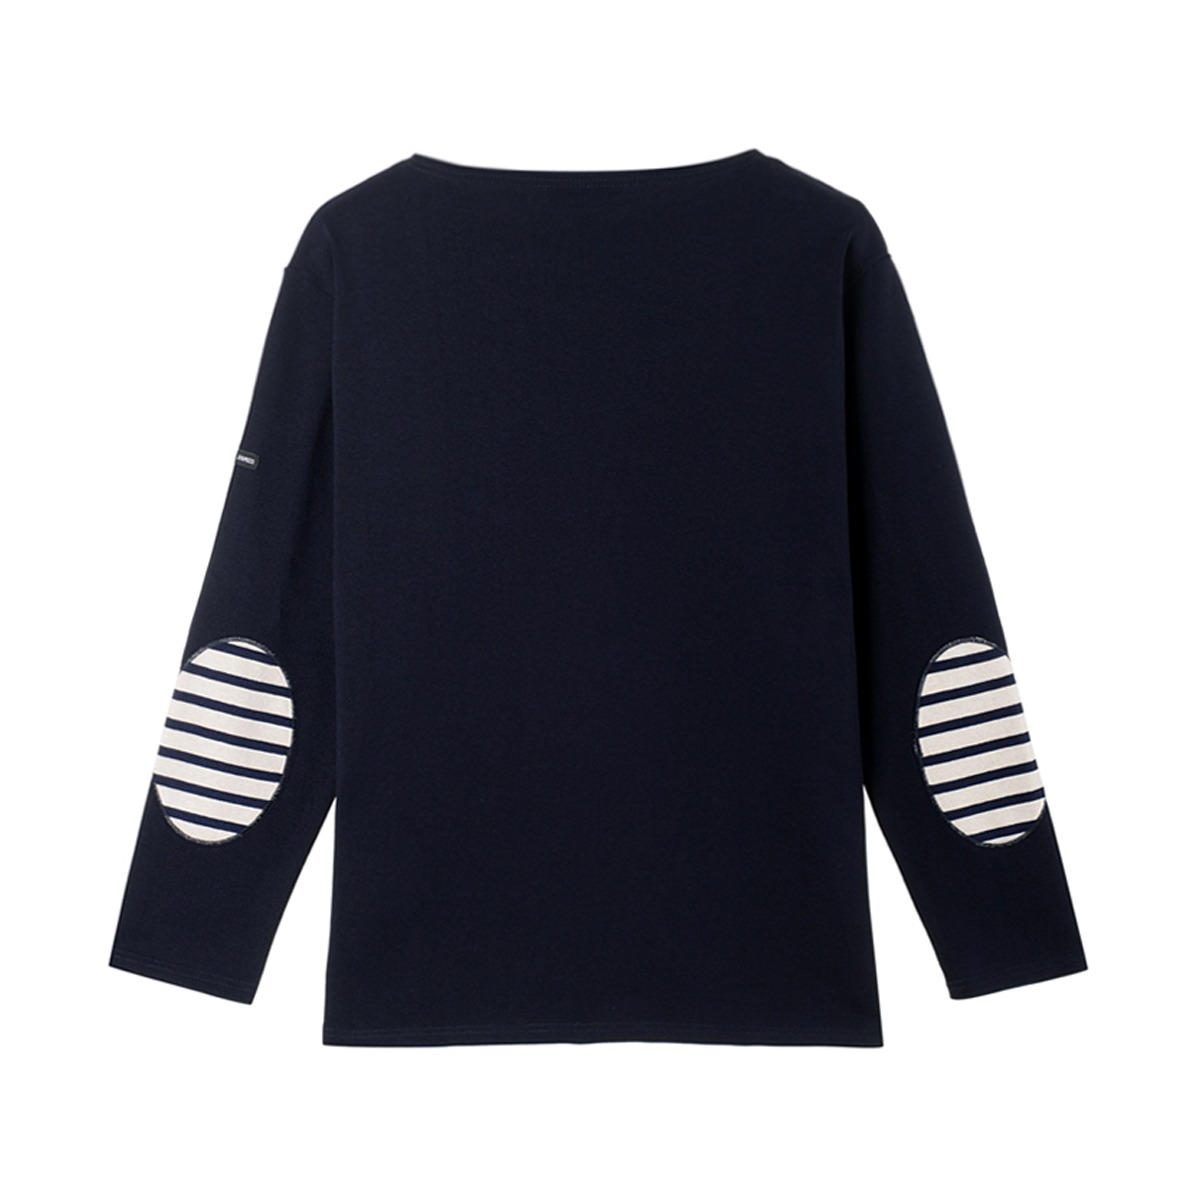 [SAINT JAMES] GUILDO U ELBOW PATCH 'NAVY'